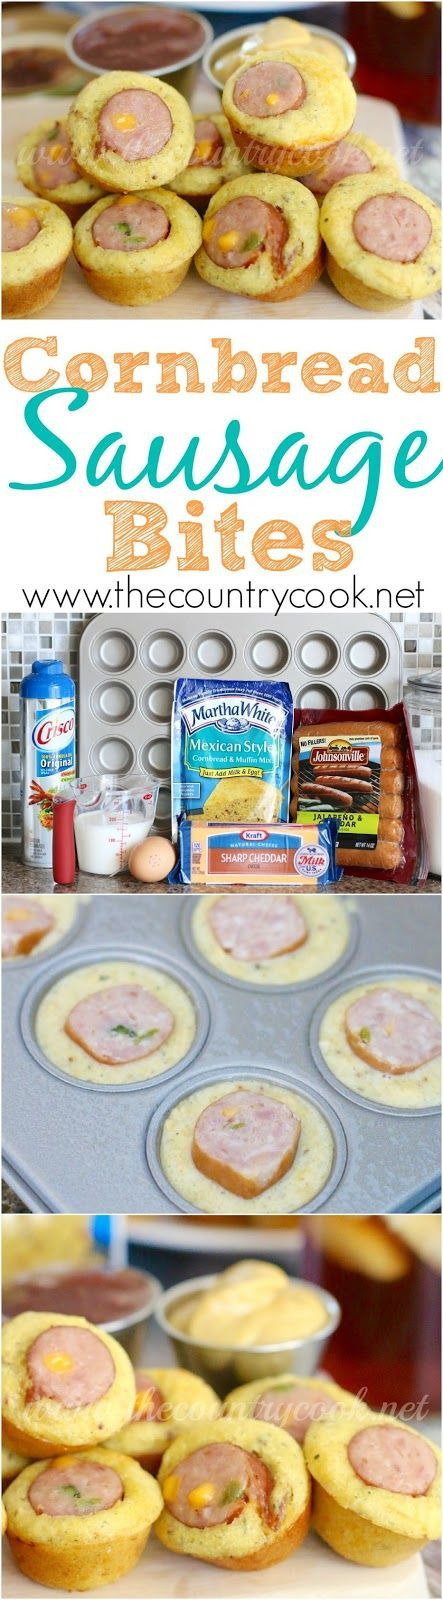 Cornbread Jalapeno Cheddar Sausage Bites recipe. The kids would love these! Great snack for a football party!